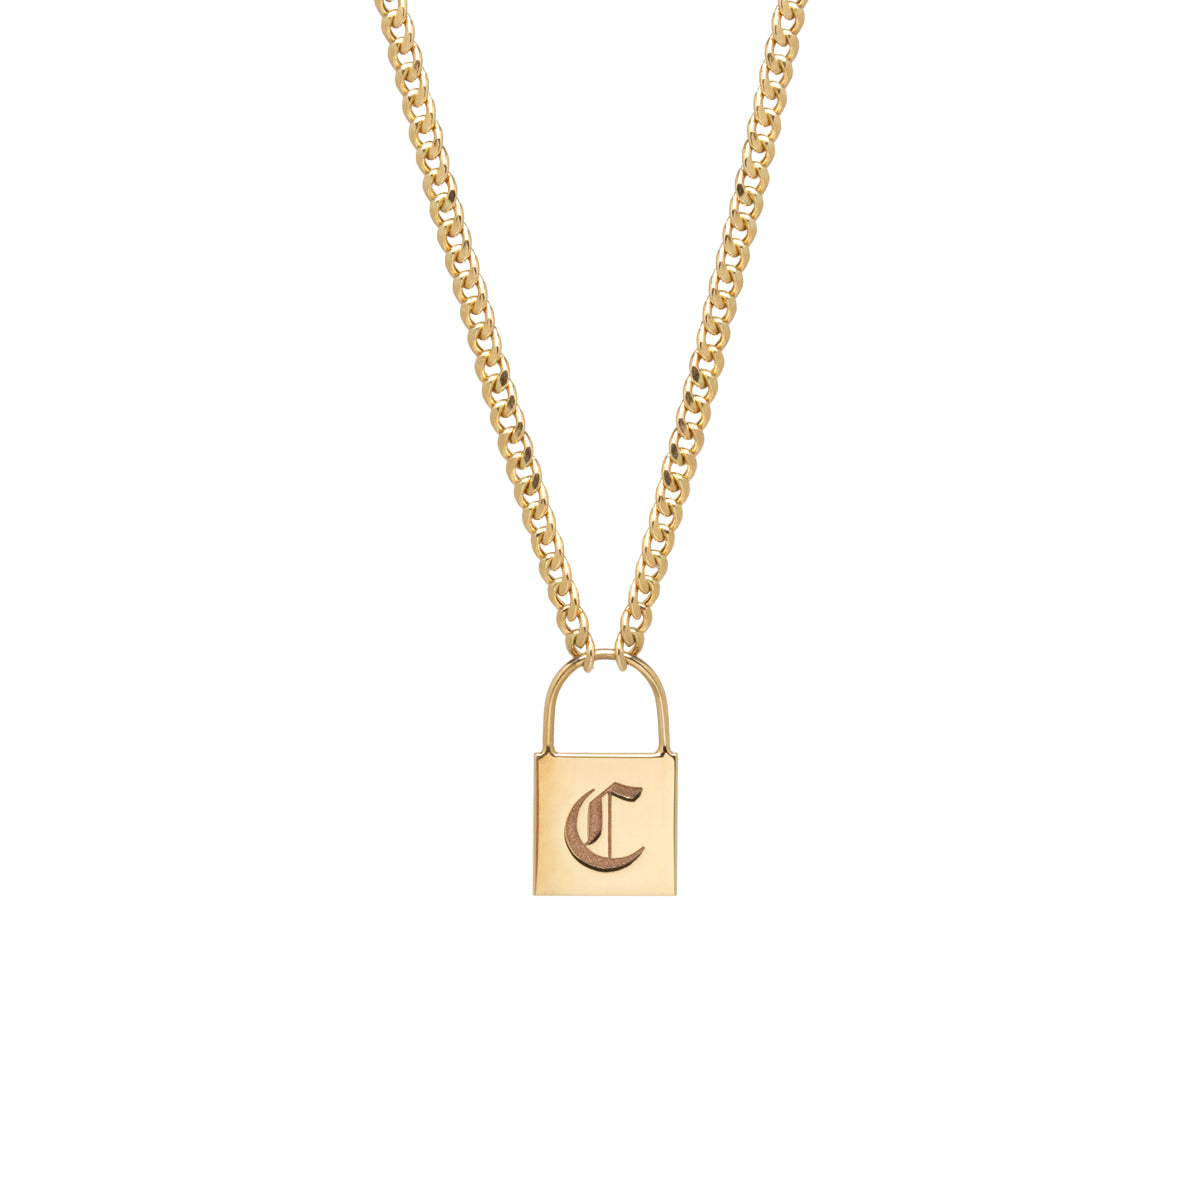 14k large padlock necklace with engraved initial